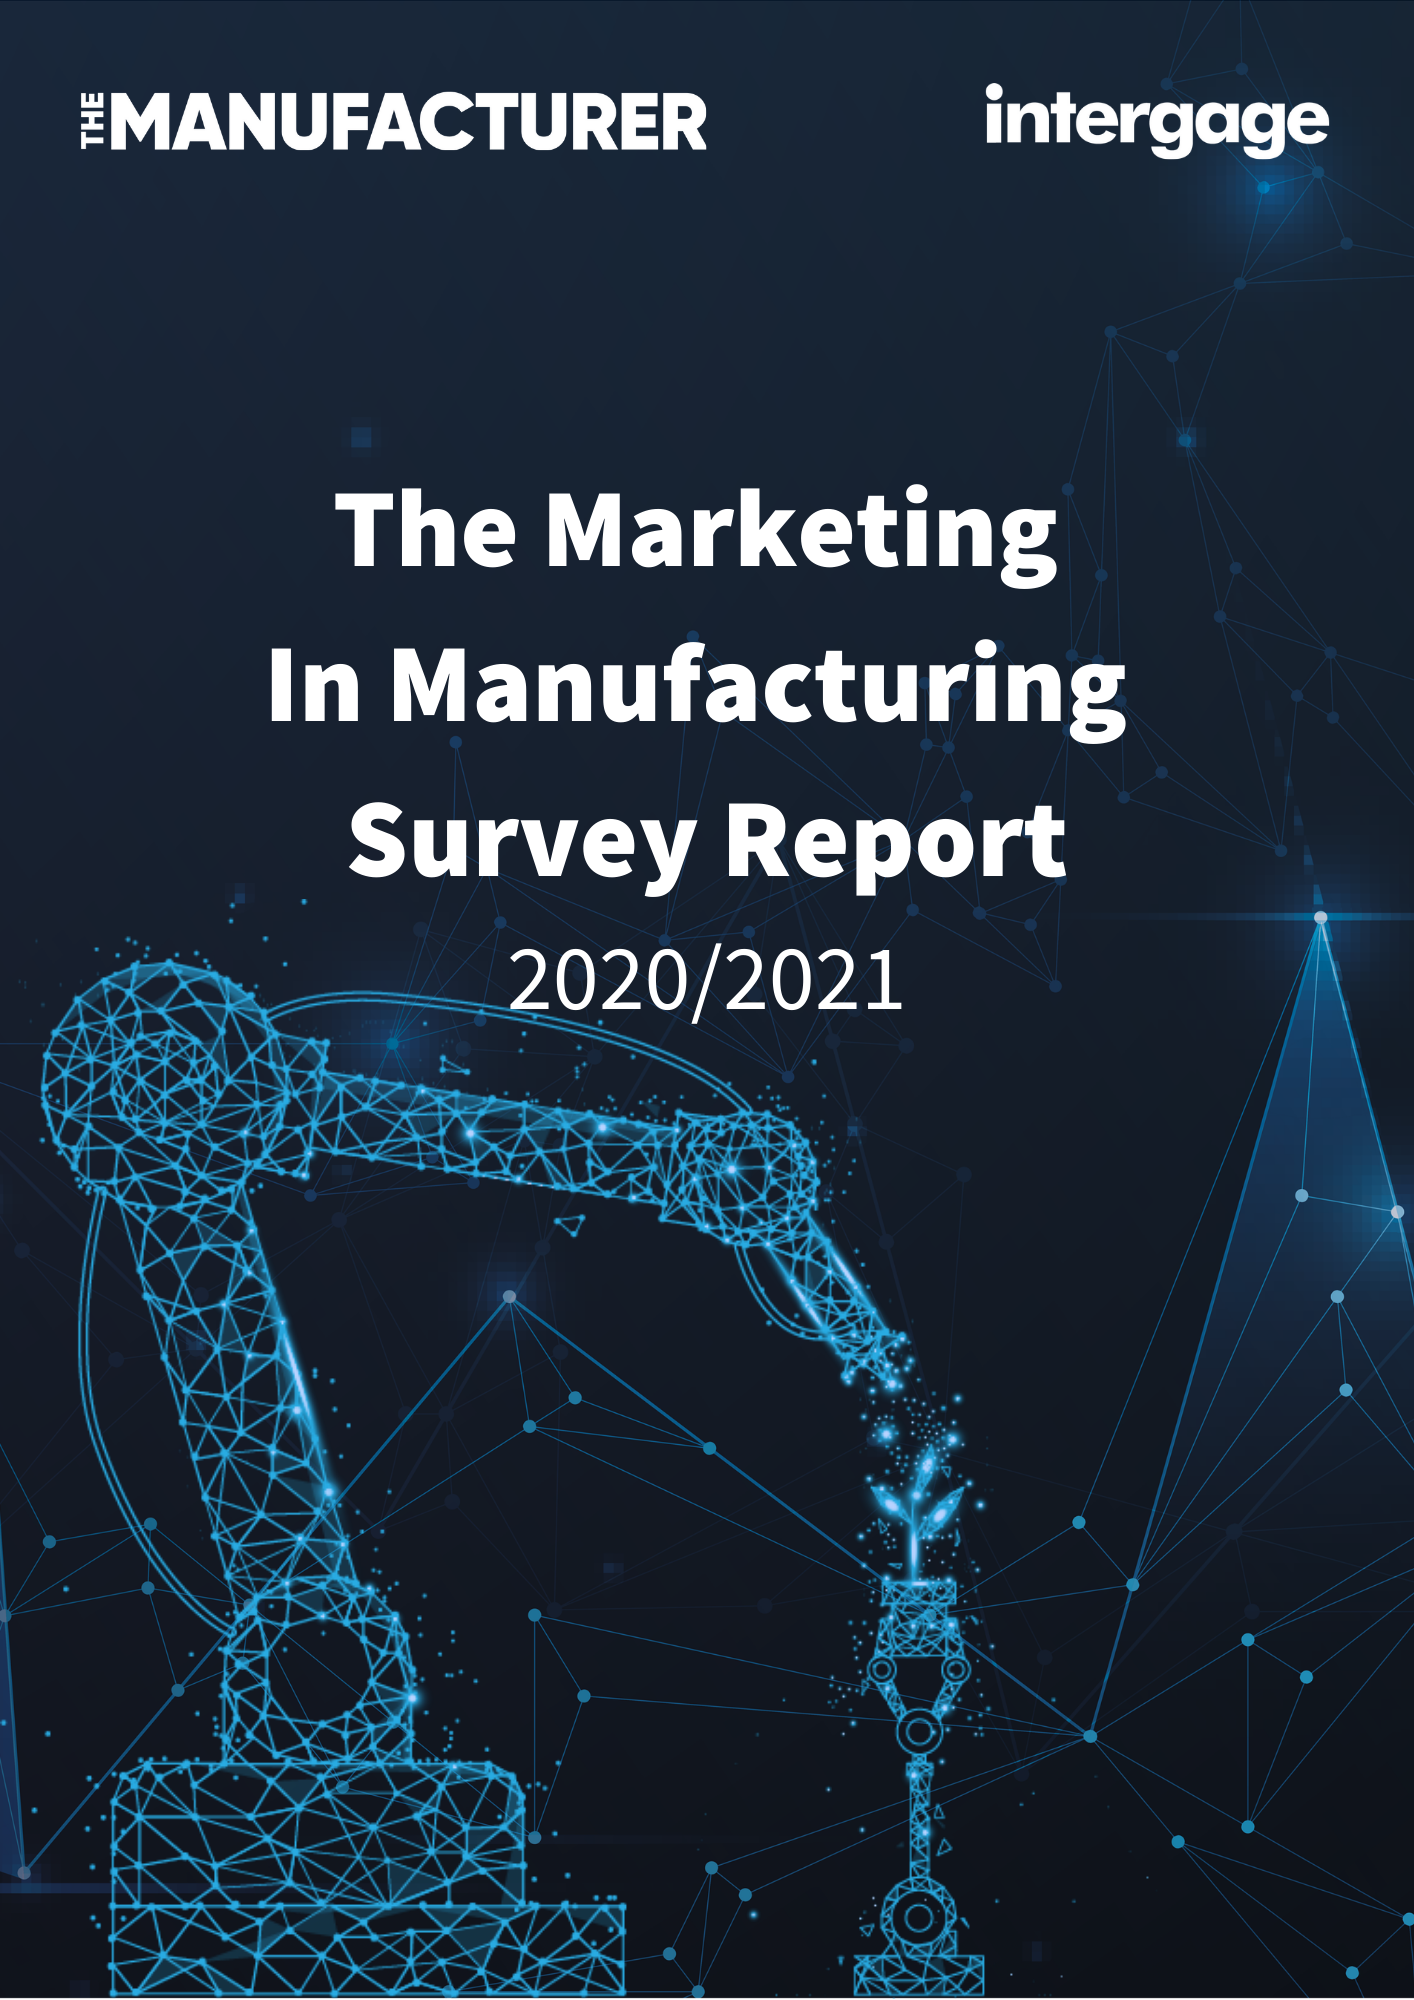 The Marketing In Manufacturing Report 2021